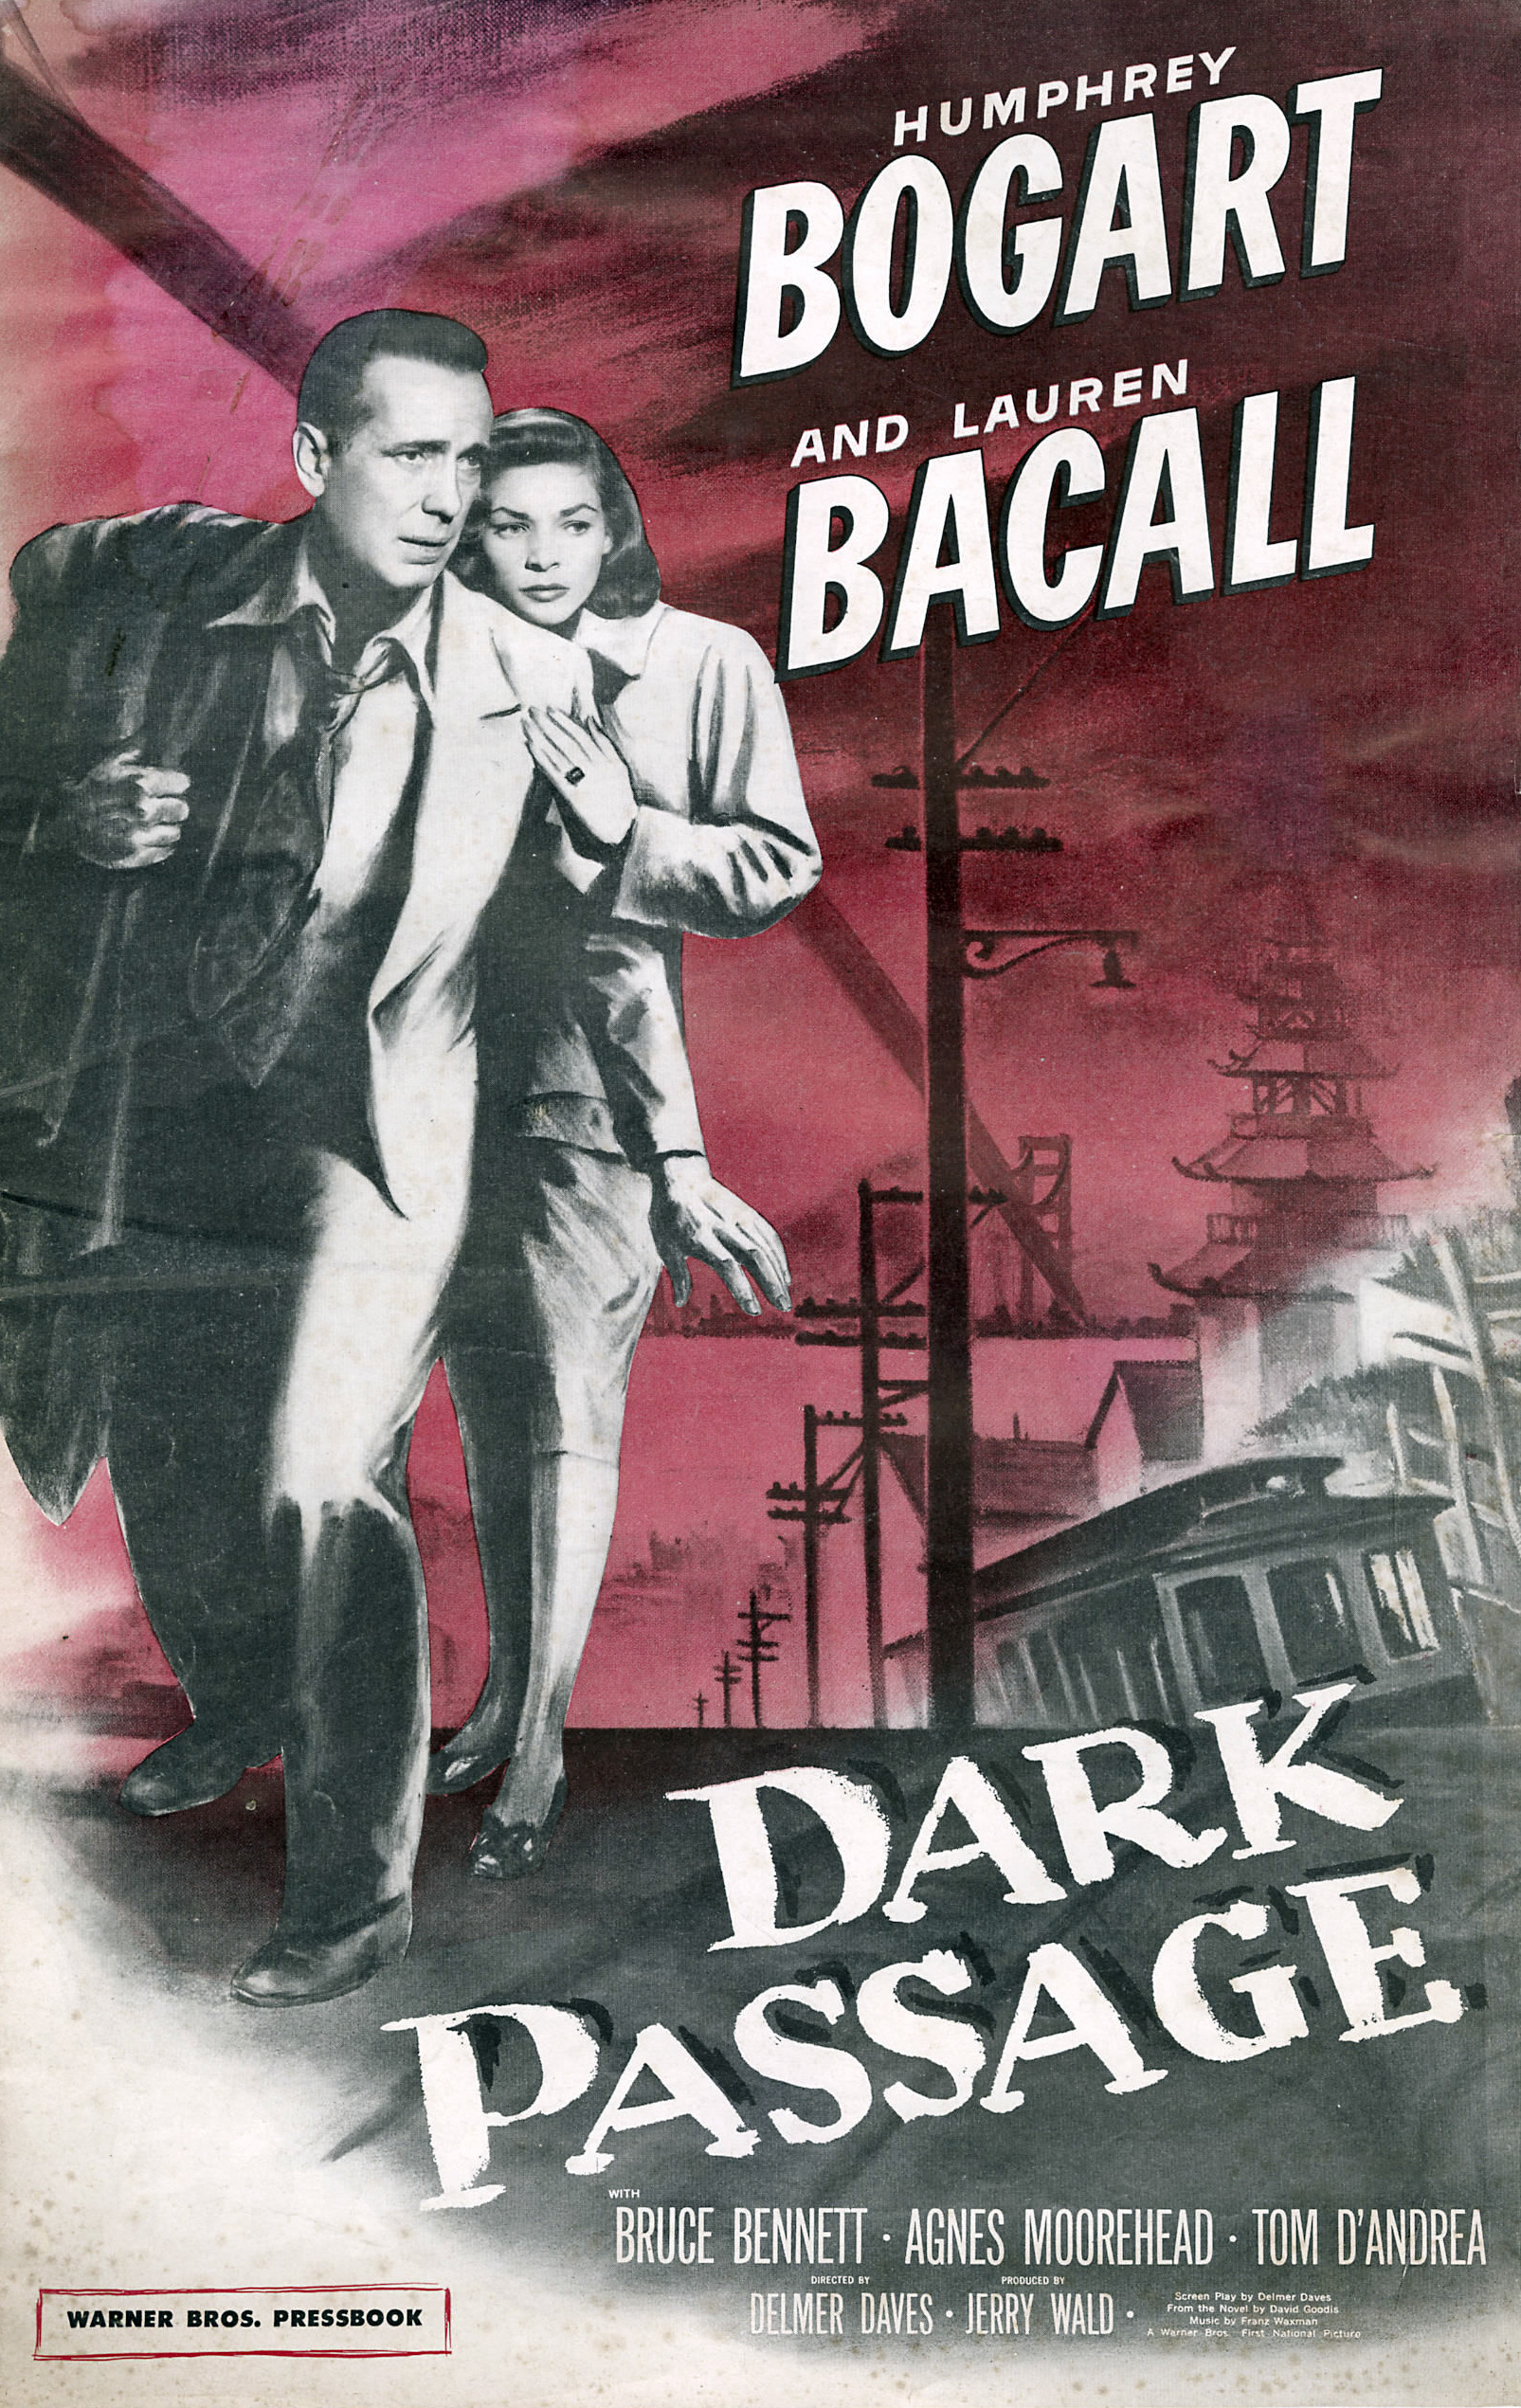 — DARK PASSAGE   Vincent Parry (Humphrey Bogart) has just escaped from prison after being locked up for a crime he did not commit -- murdering his wife. On the outside, Vincent finds that his face is betraying him, literally, so he finds a plastic surgery to give him new features. After getting a ride out of town from a stranger, Vincent crosses paths with a young woman (Lauren Bacall) who lets him stay in her apartment while he heals and continues to try and clear his name.